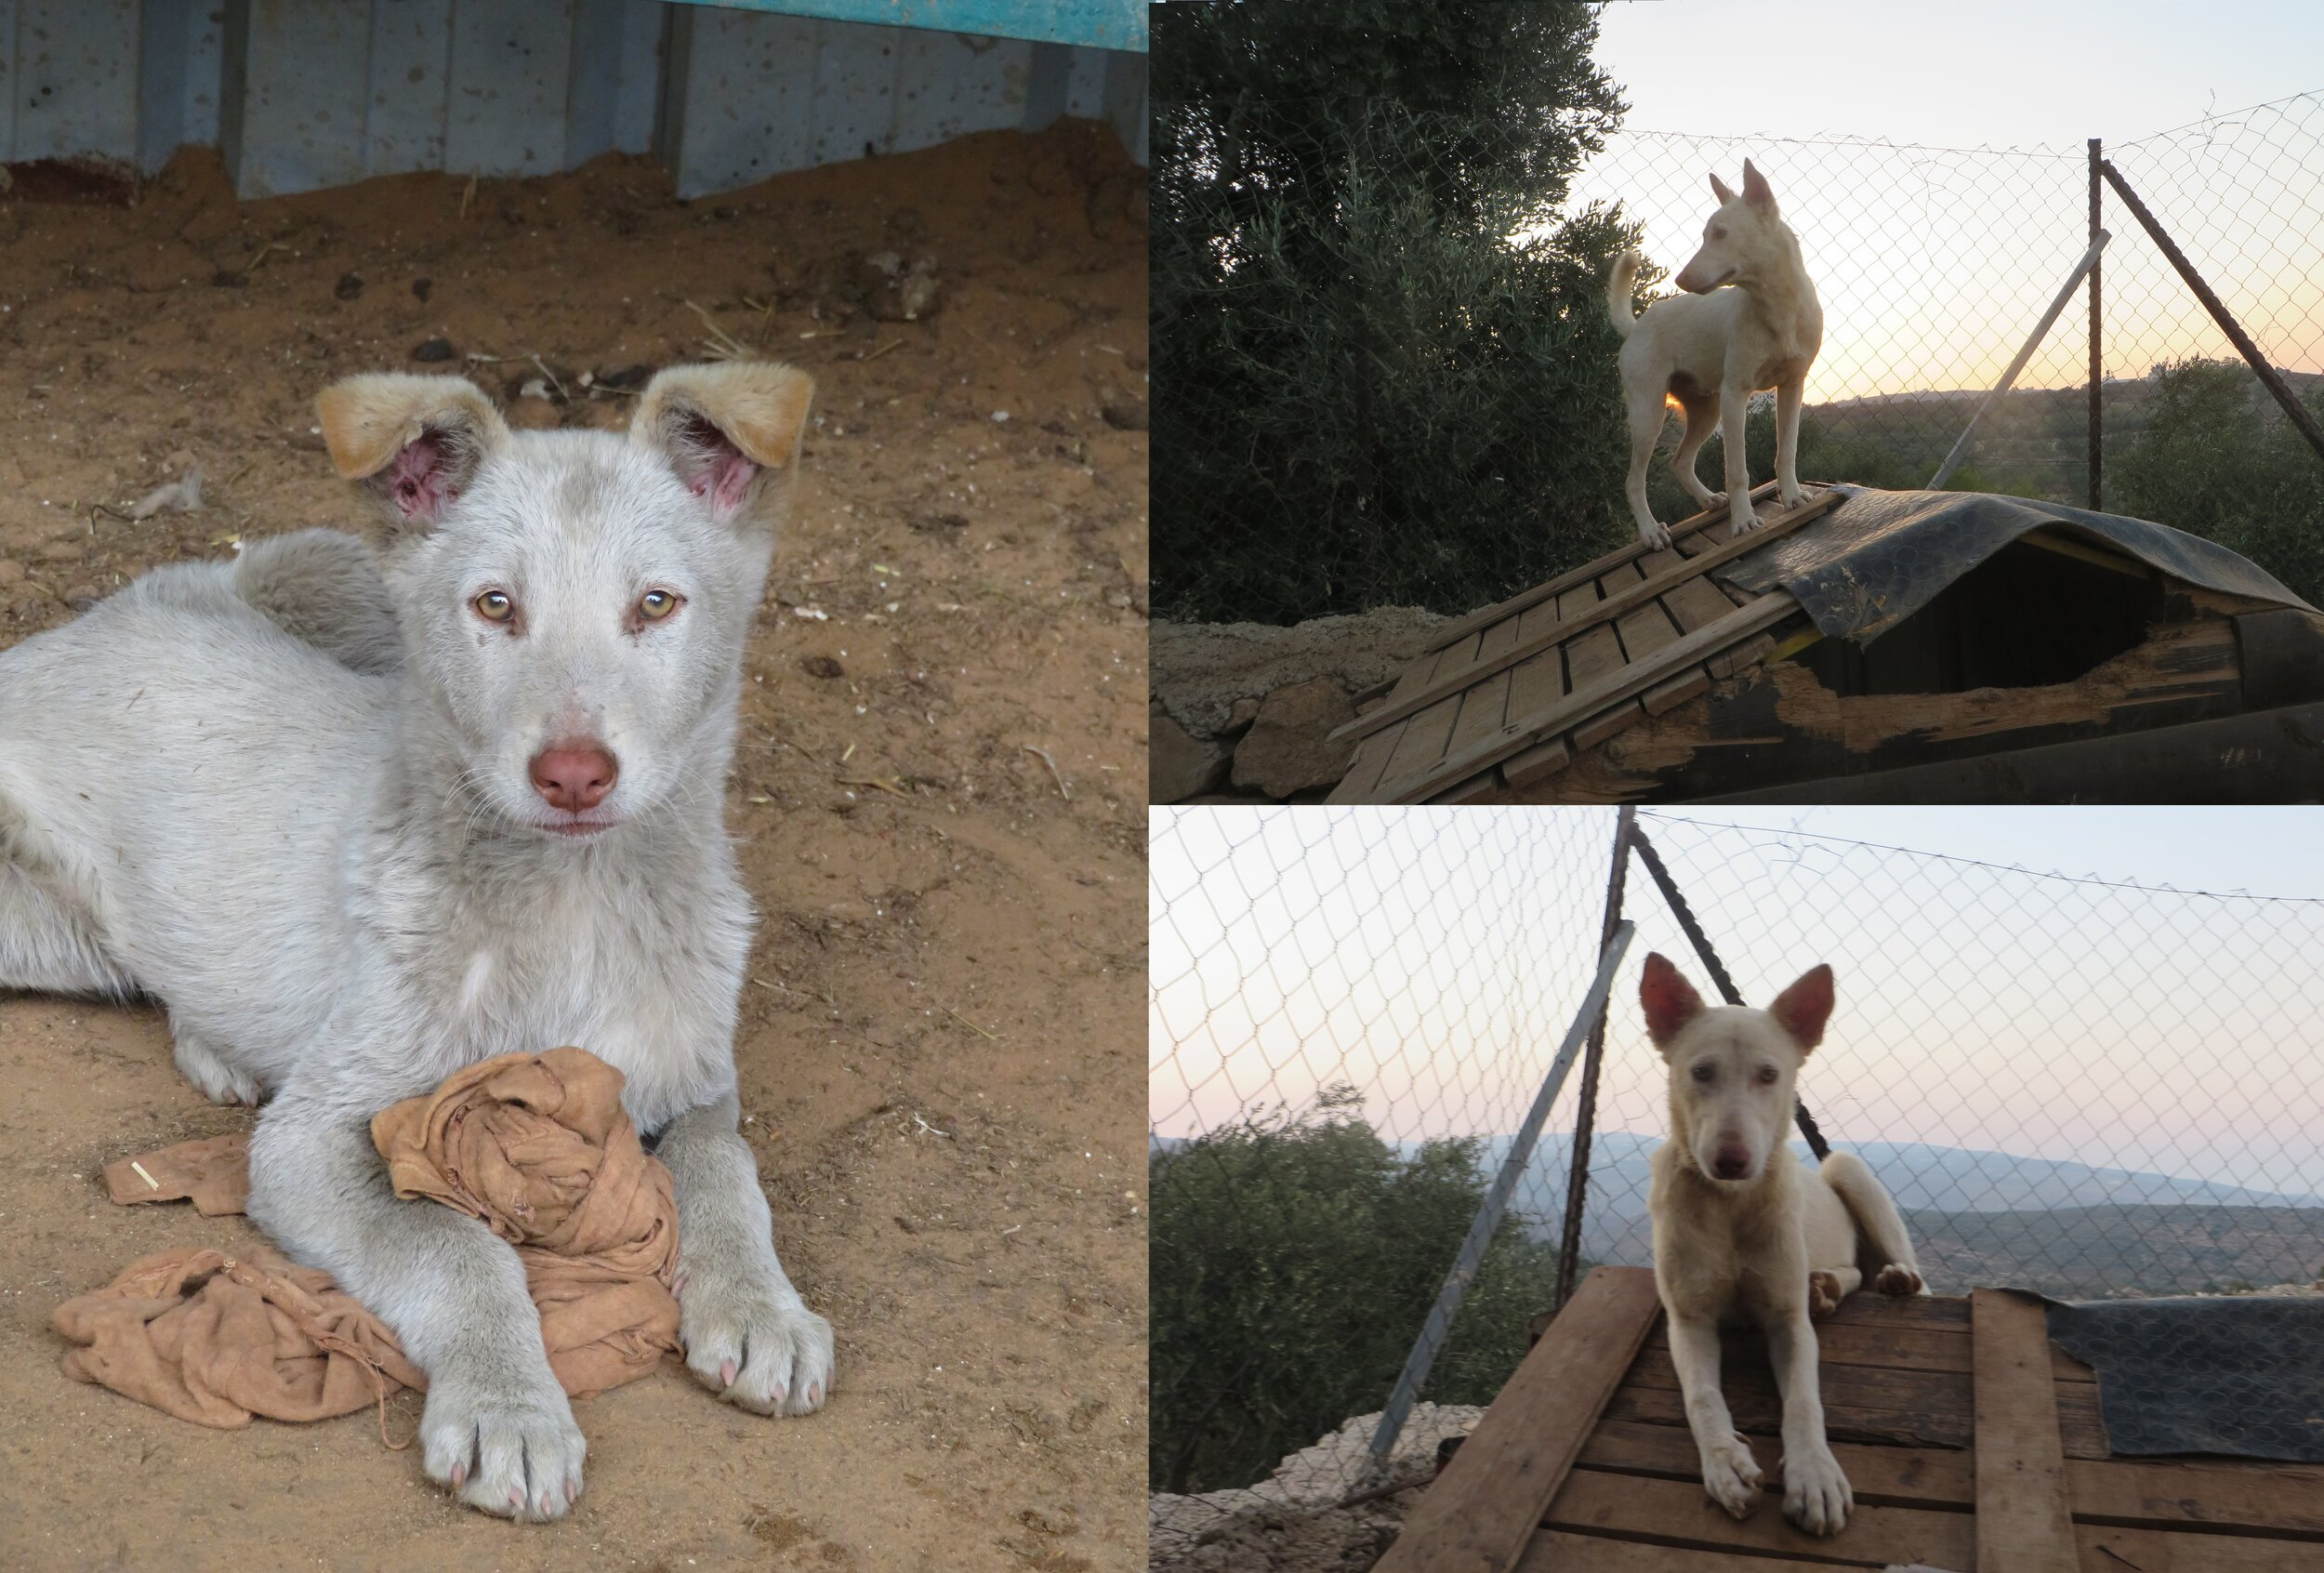 Nilin - Nilin was found abandoned near a gas station in the village of Nilin, covered in dirt and oil. He fit right in when he got to Hugz and has been full of energy and curiosity ever seen he got here. He always tries to escape when we open the pen door, but he just runs around outside for a minute then comes right back, because he really loves his penmates and would rather play with them all day. Thanks to Kelly for sponsoring Nilin!